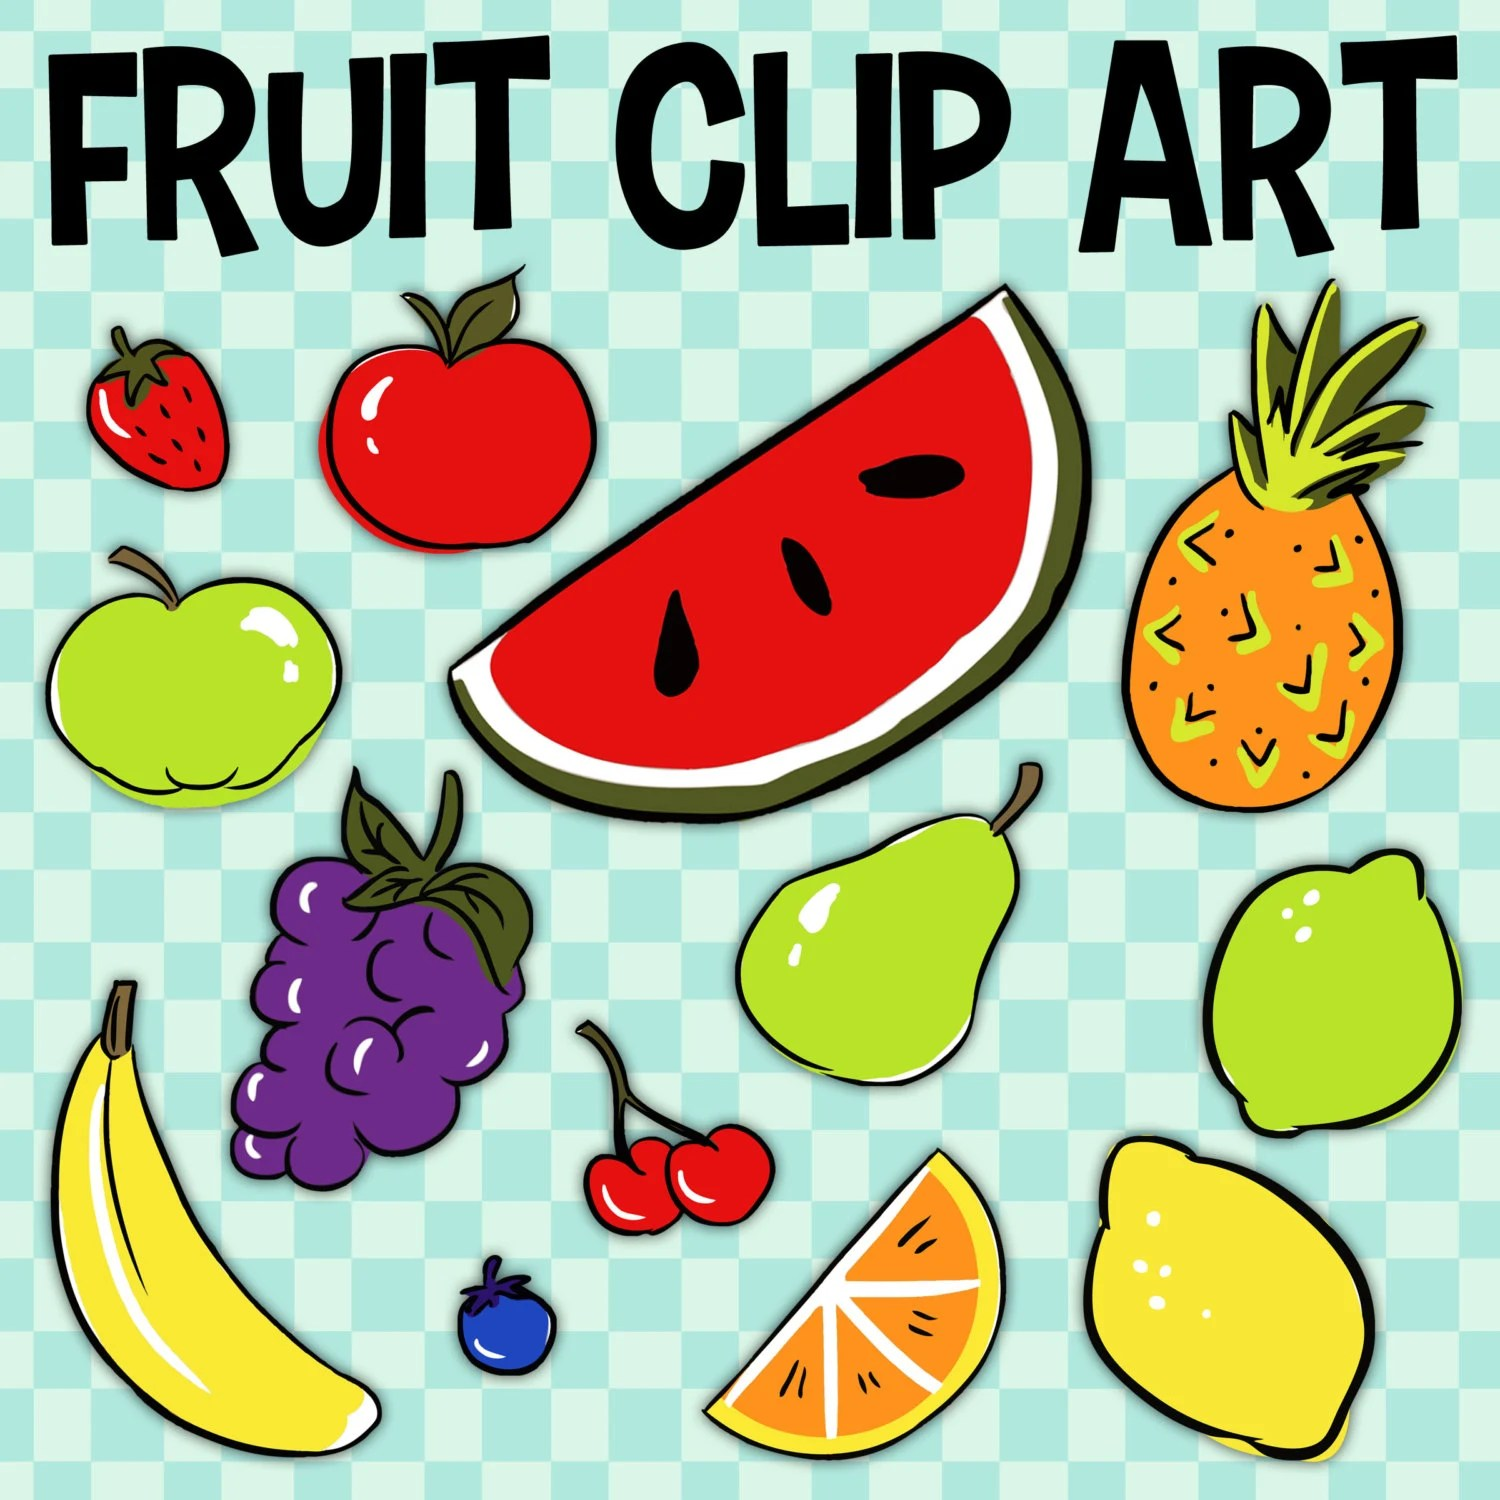 Fruit Clip Art Banana Clip Art Food Group Art Pineapple By